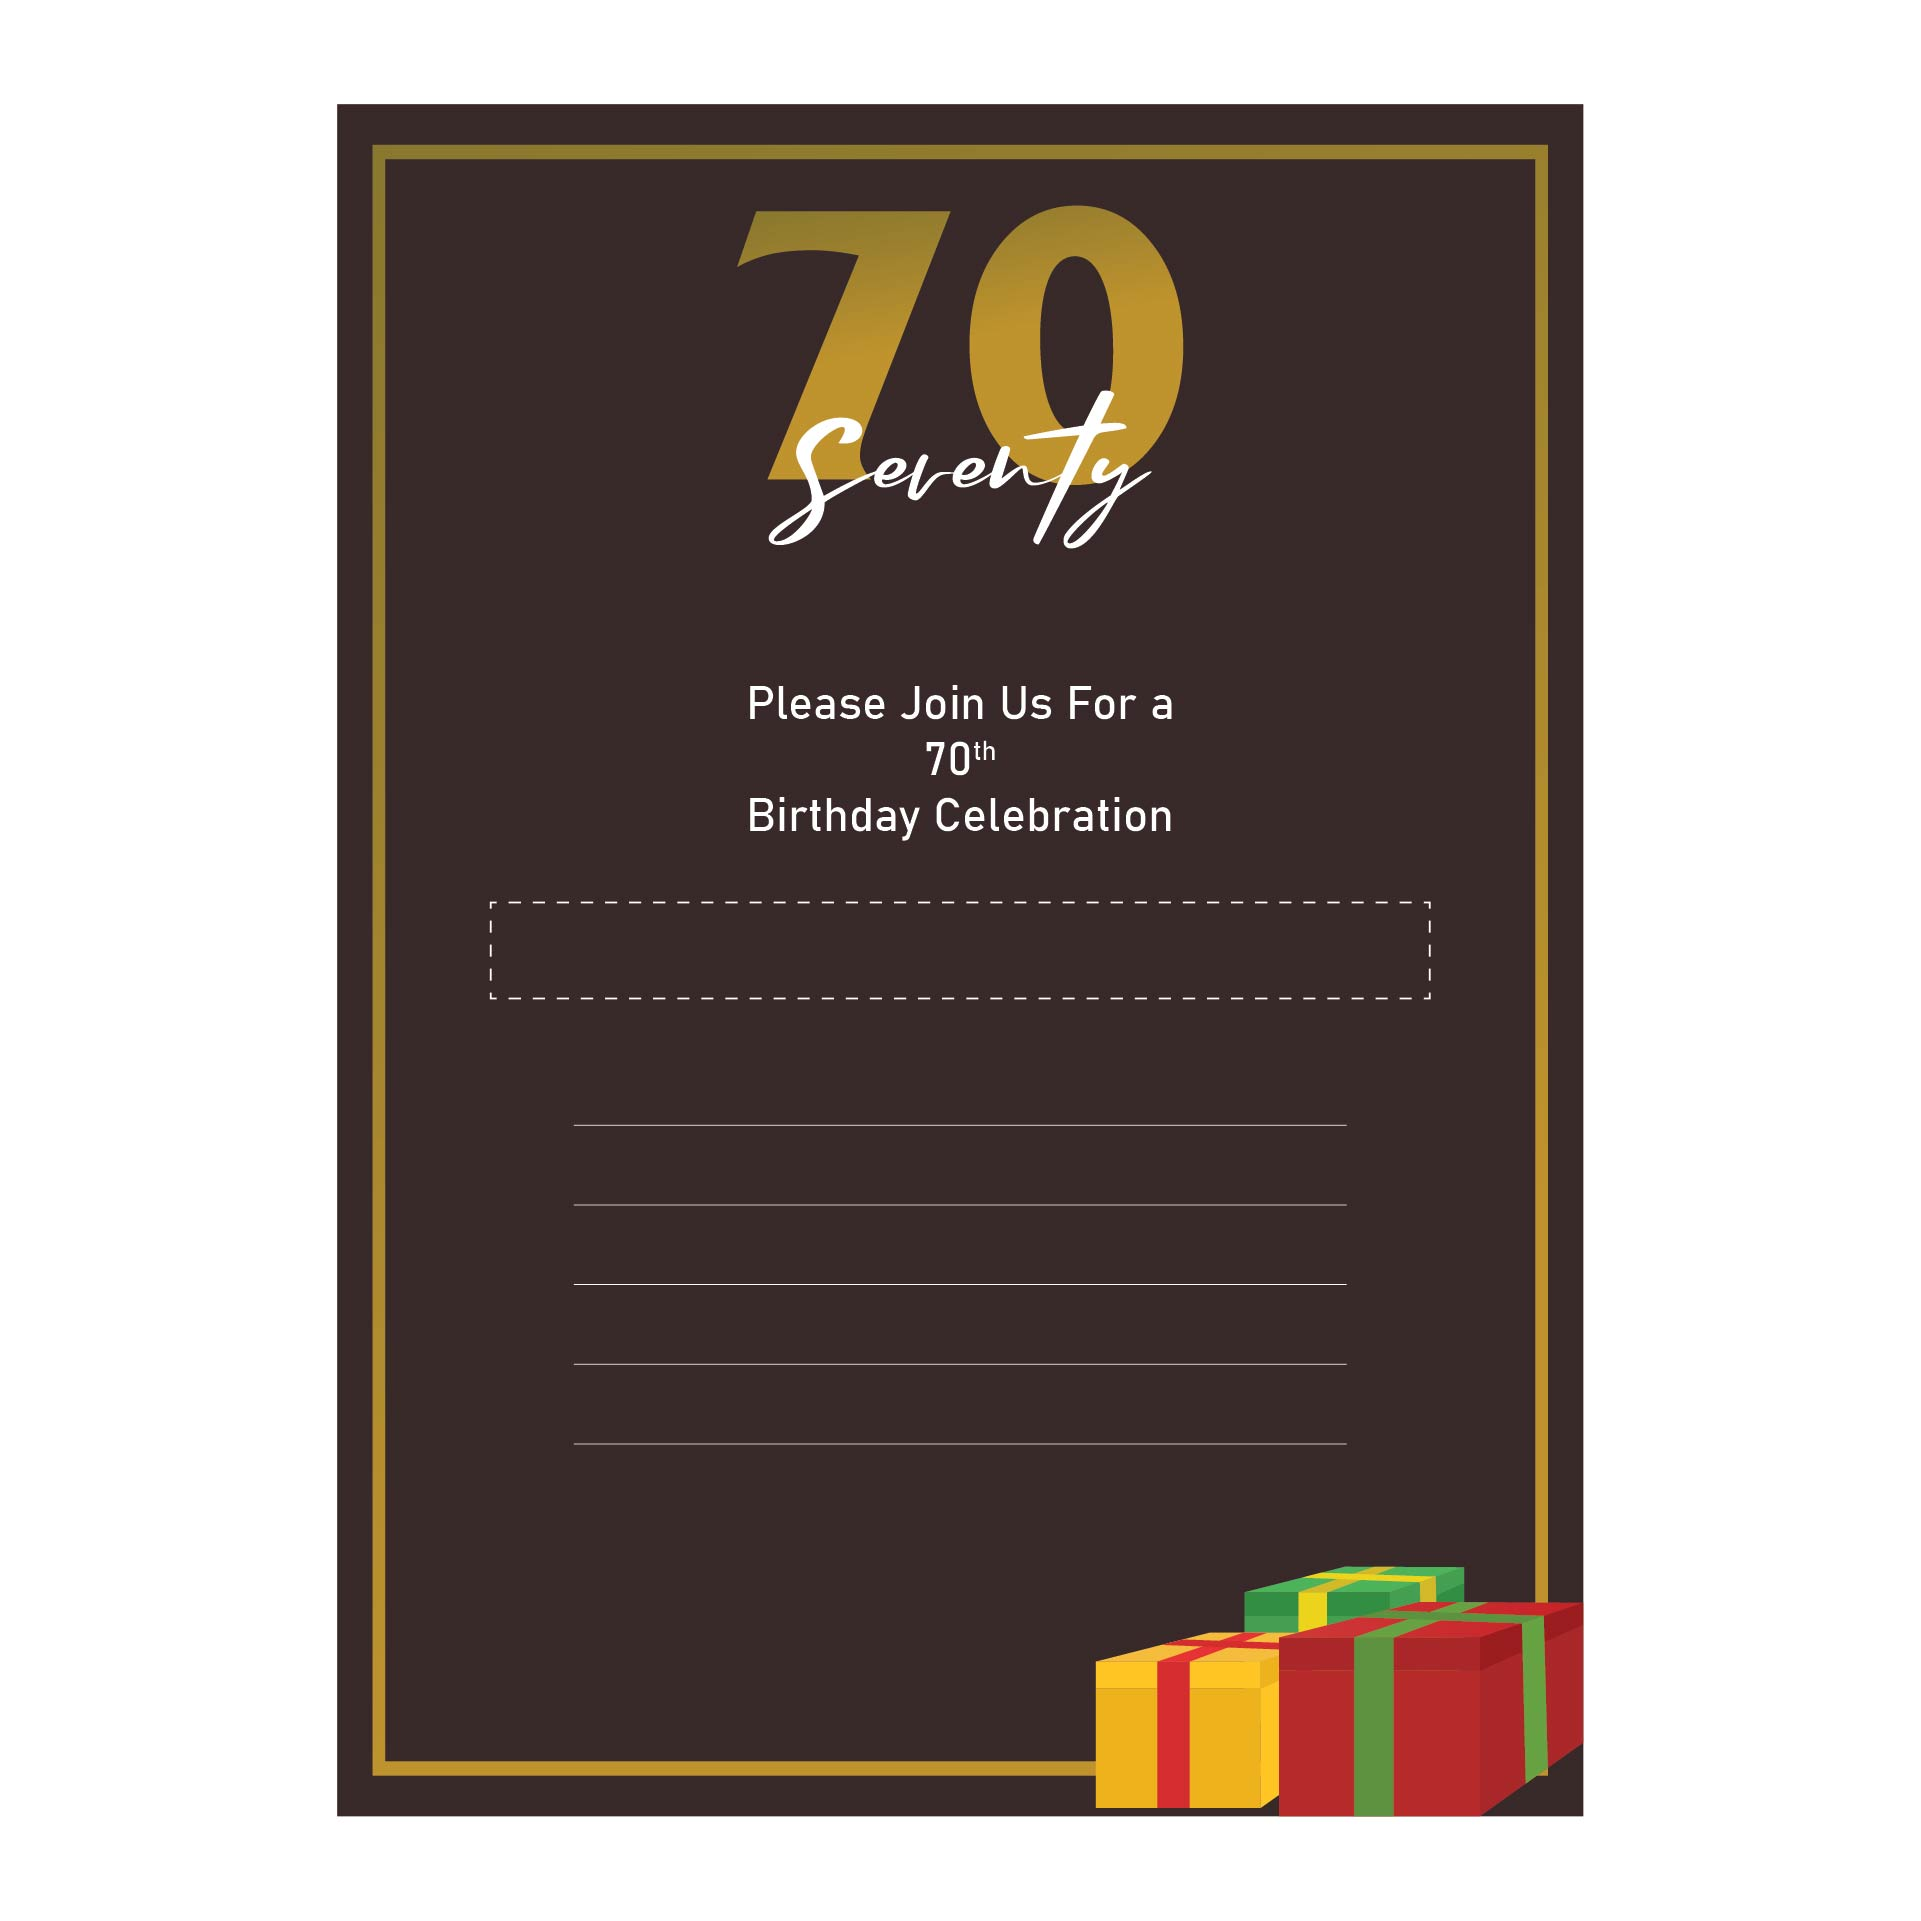 9 Images of 70th Birthday Invitations Free Printable